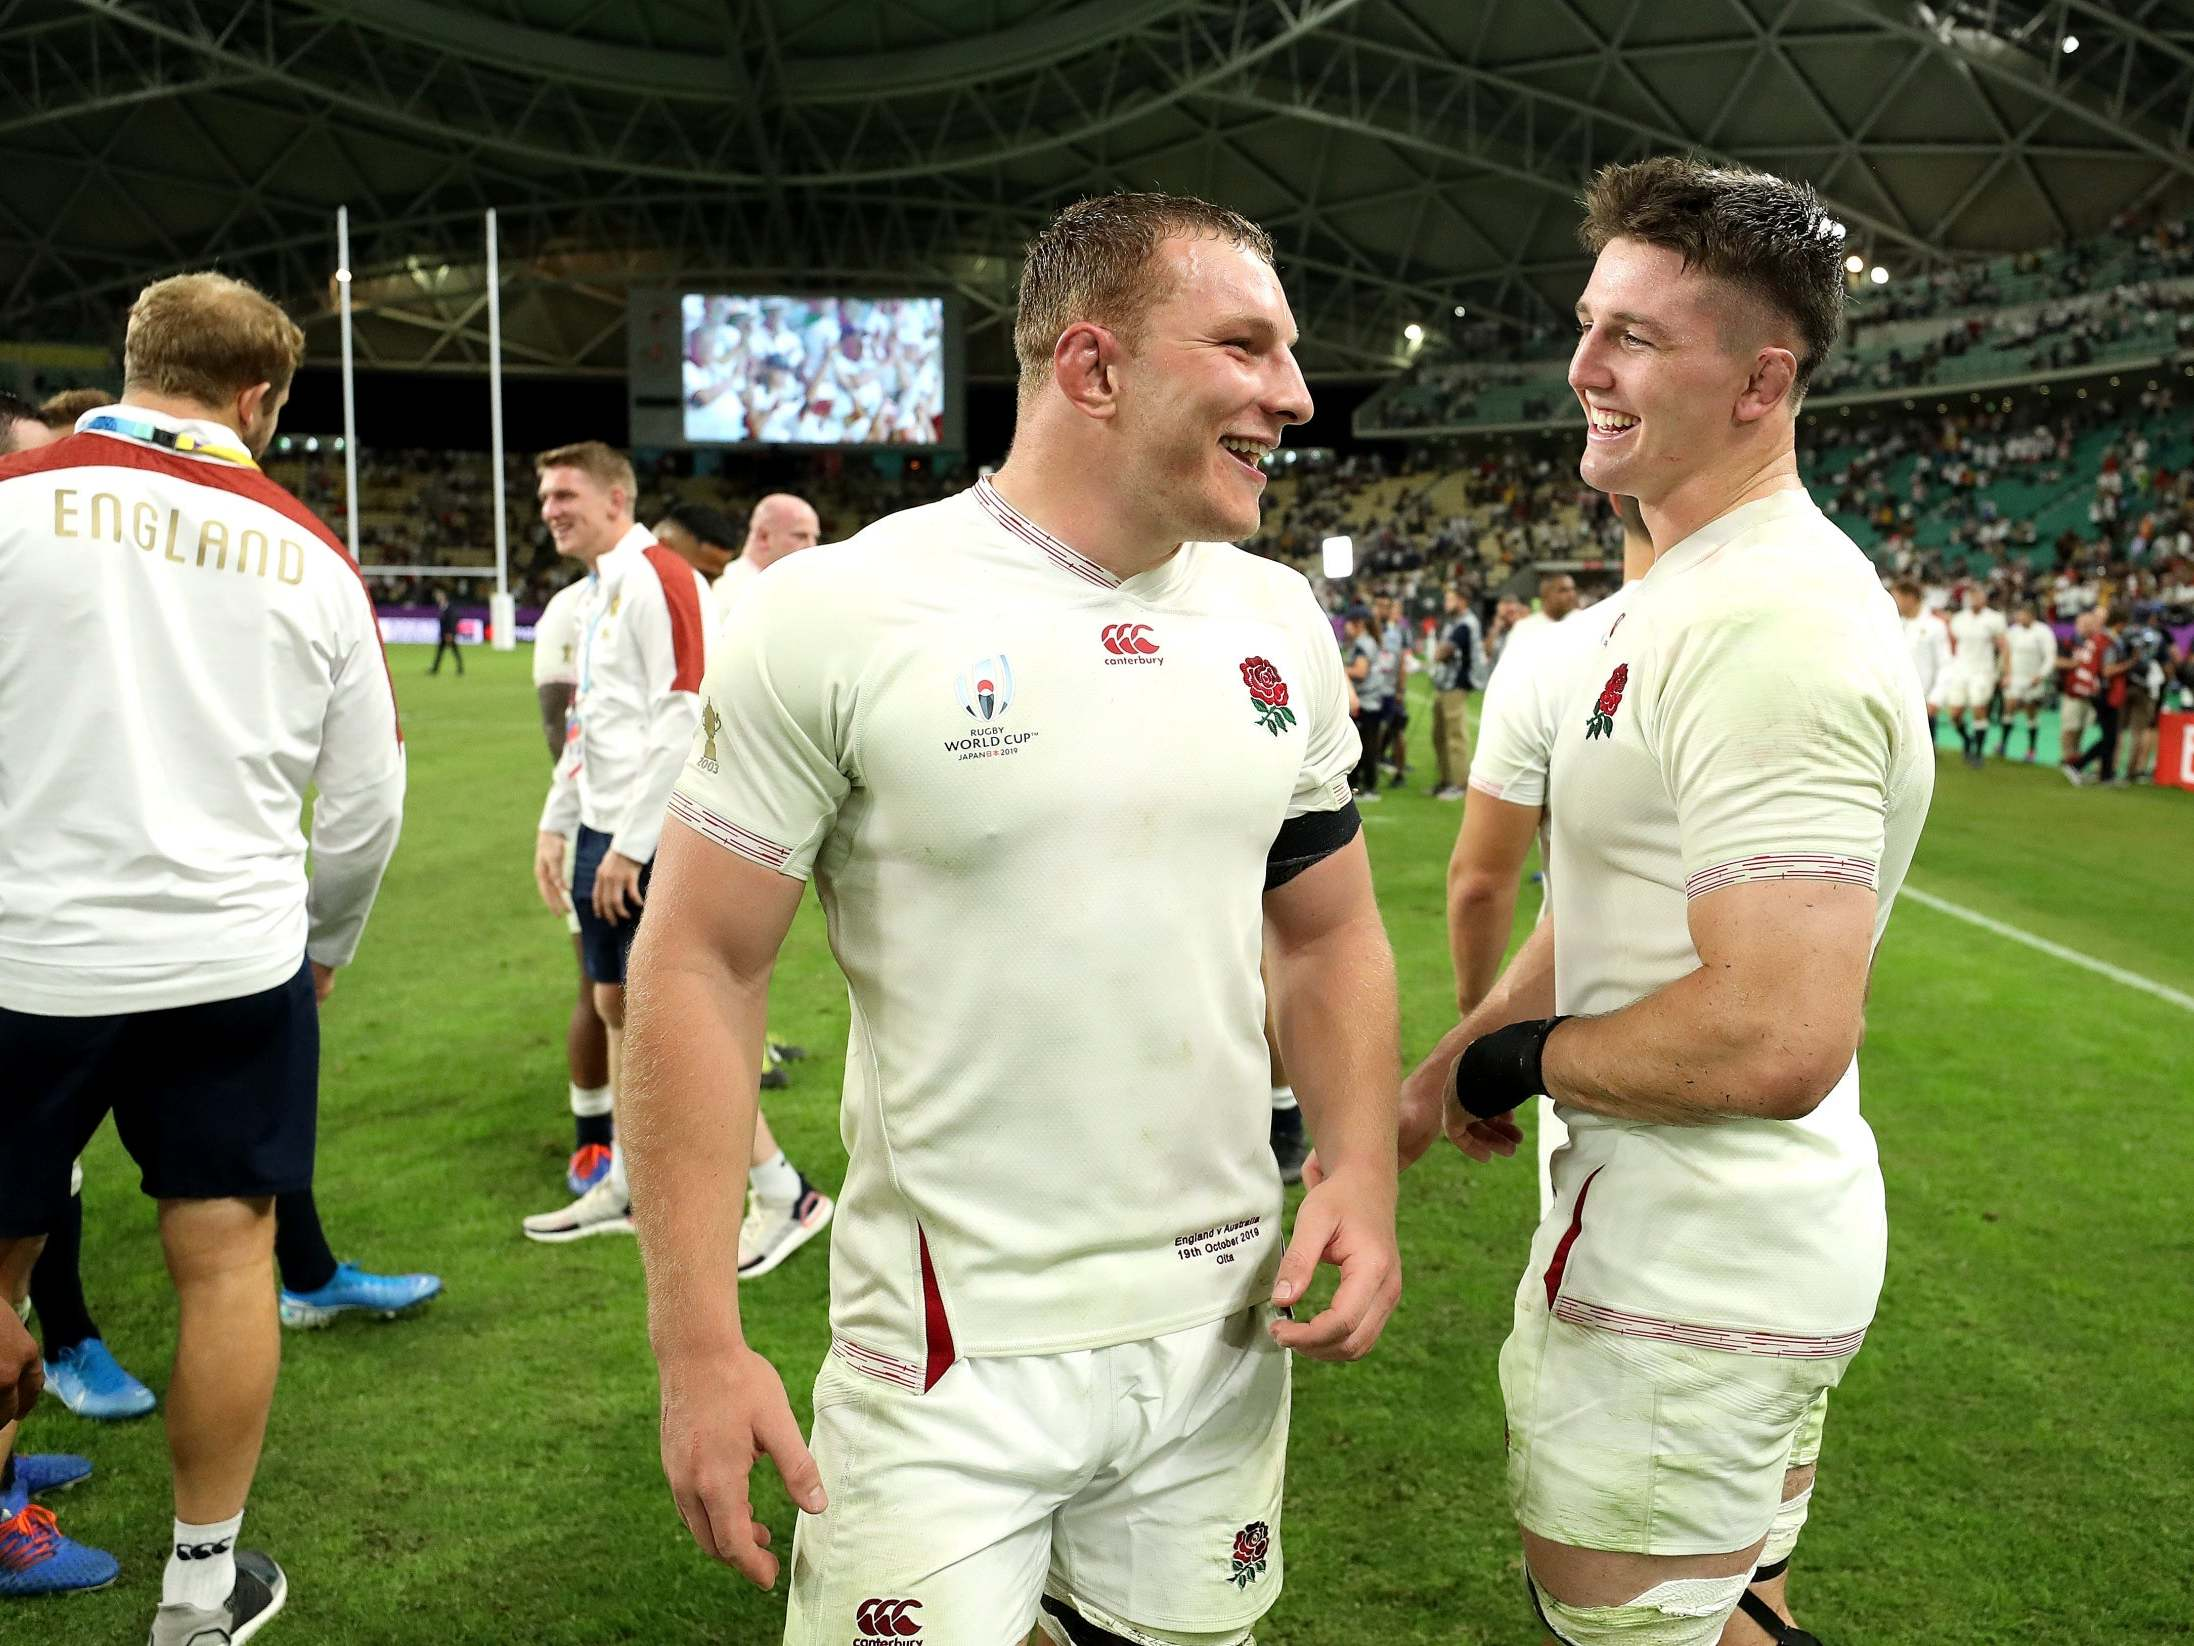 Rugby World Cup 2019: How Tom Curry and Sam Underhill's masterclass marked a generational shift